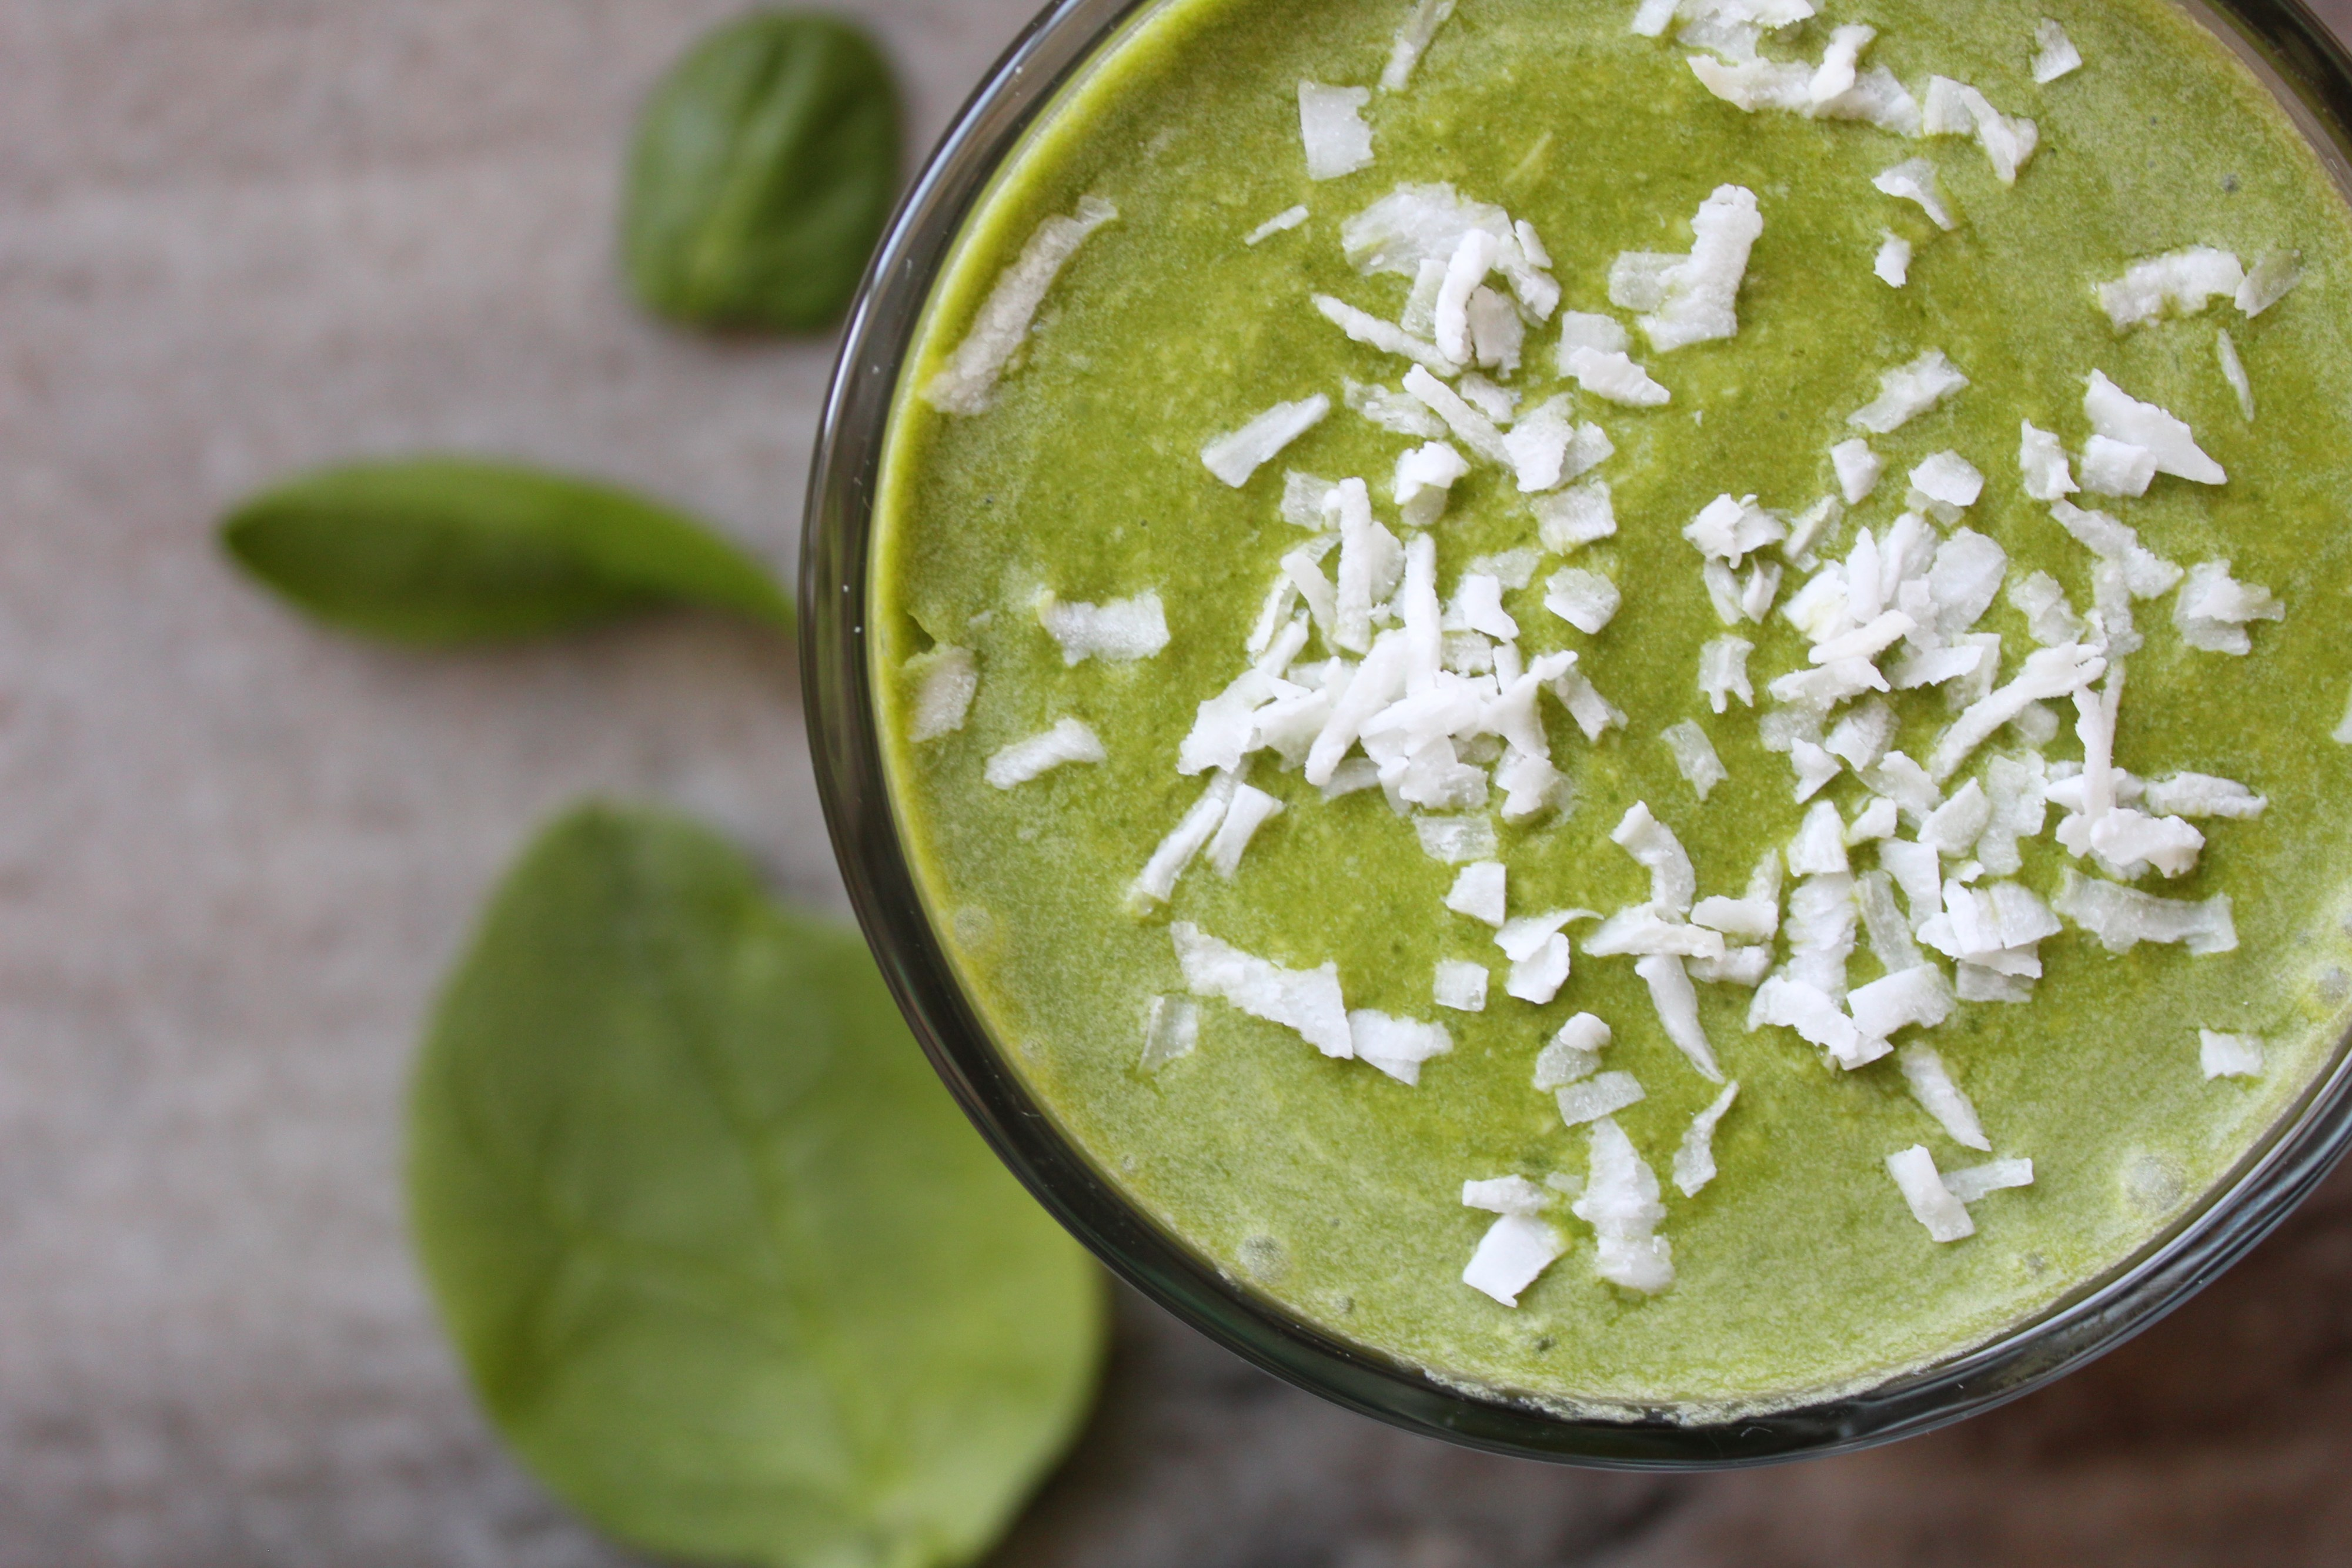 This deliciously tropical green smoothie is packed with spinach, sweet pineapple and banana, and a dash of matcha for some green tea flavor!